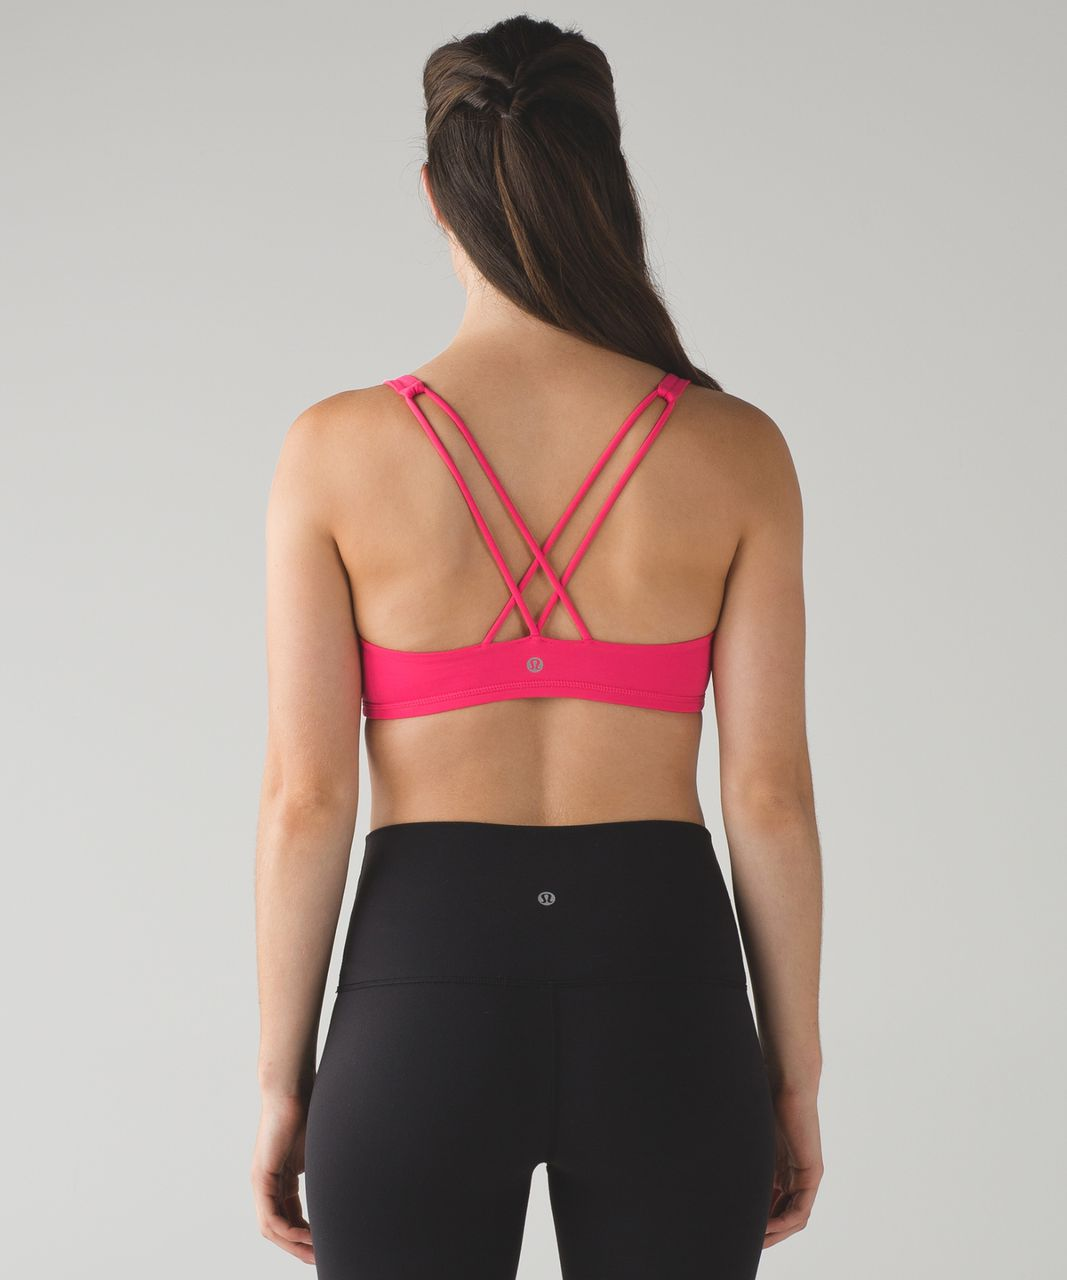 Lululemon Free To Be Bra - Lush Coral